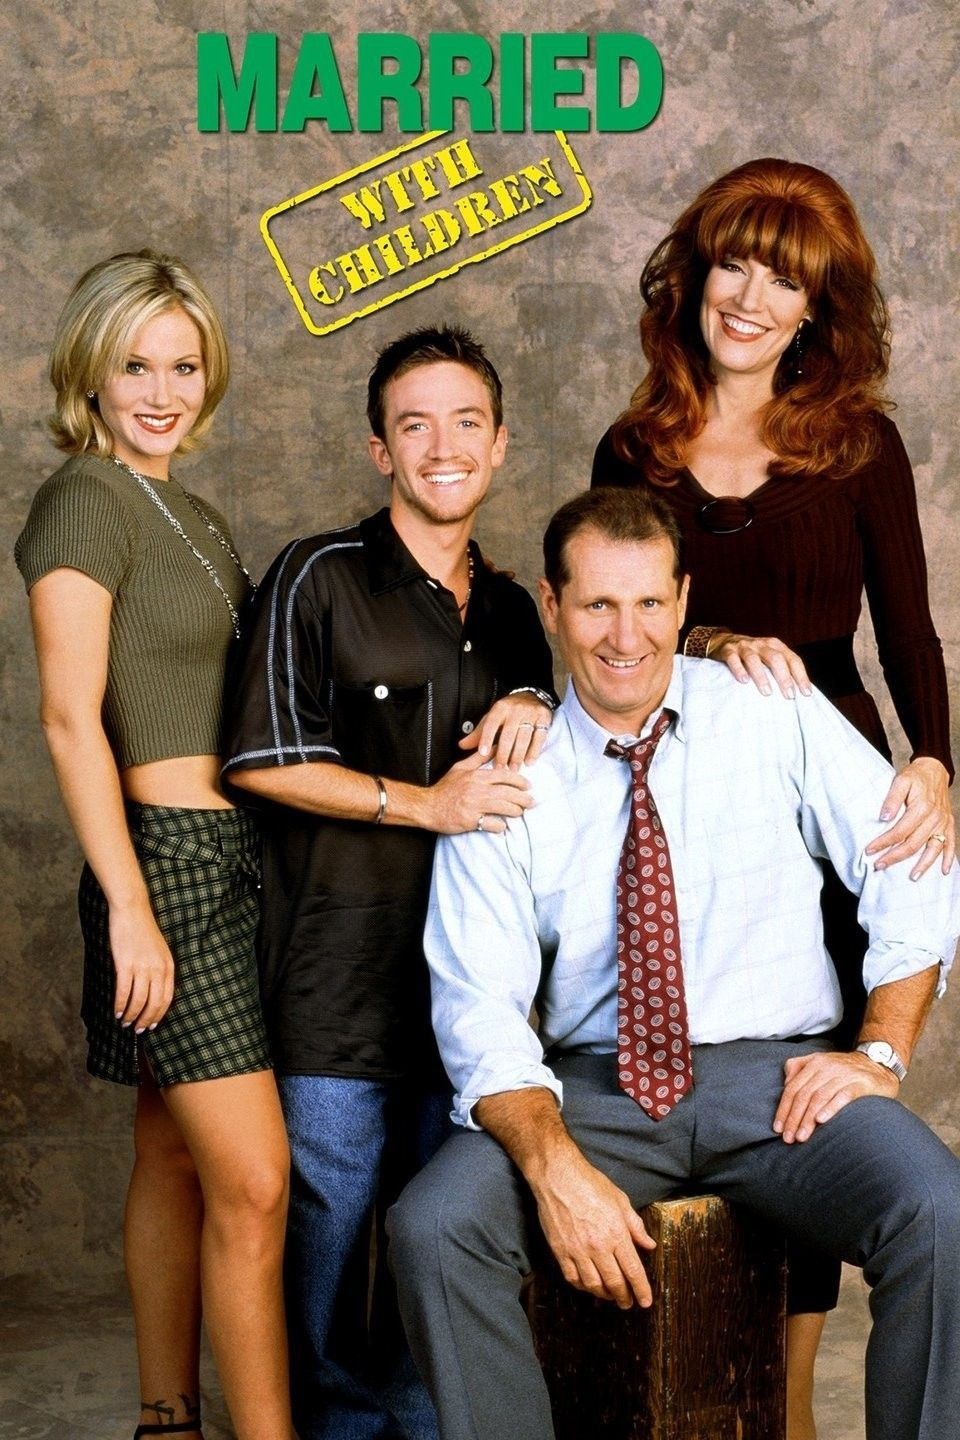 married with children, Comedy, Sitcom, Series, Television